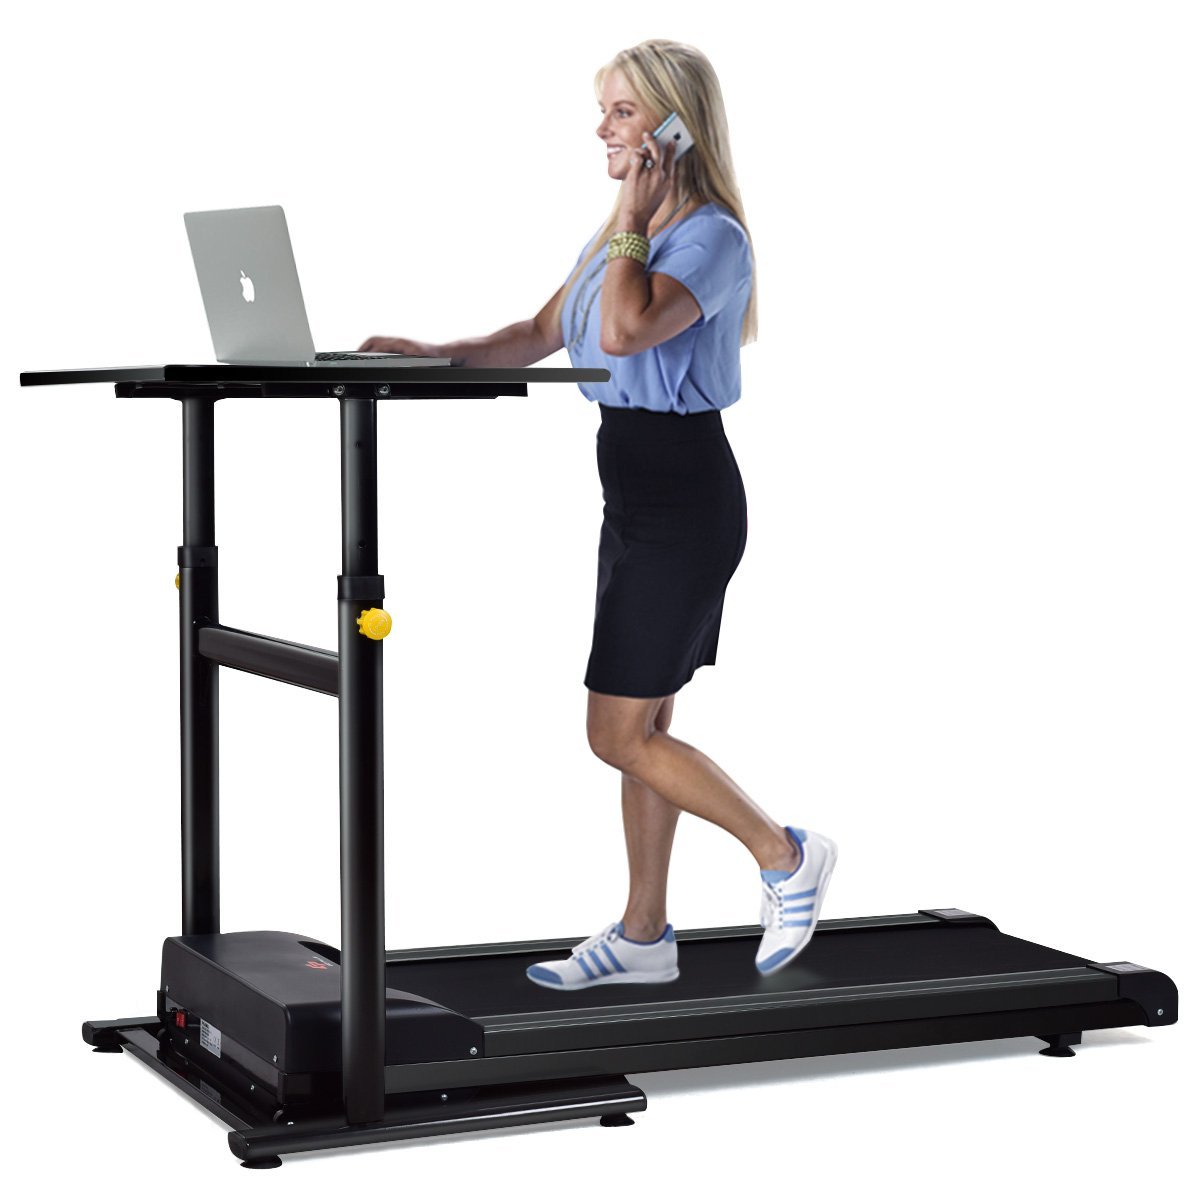 under your on a drawer free technogym deskercise case more are away workout than activity elegant come slim the they reebok velcro in best outdoor enough stand exercise tuck most straps fitness to indybest with amazon desk for independent or extras equipment weights work nike carry these